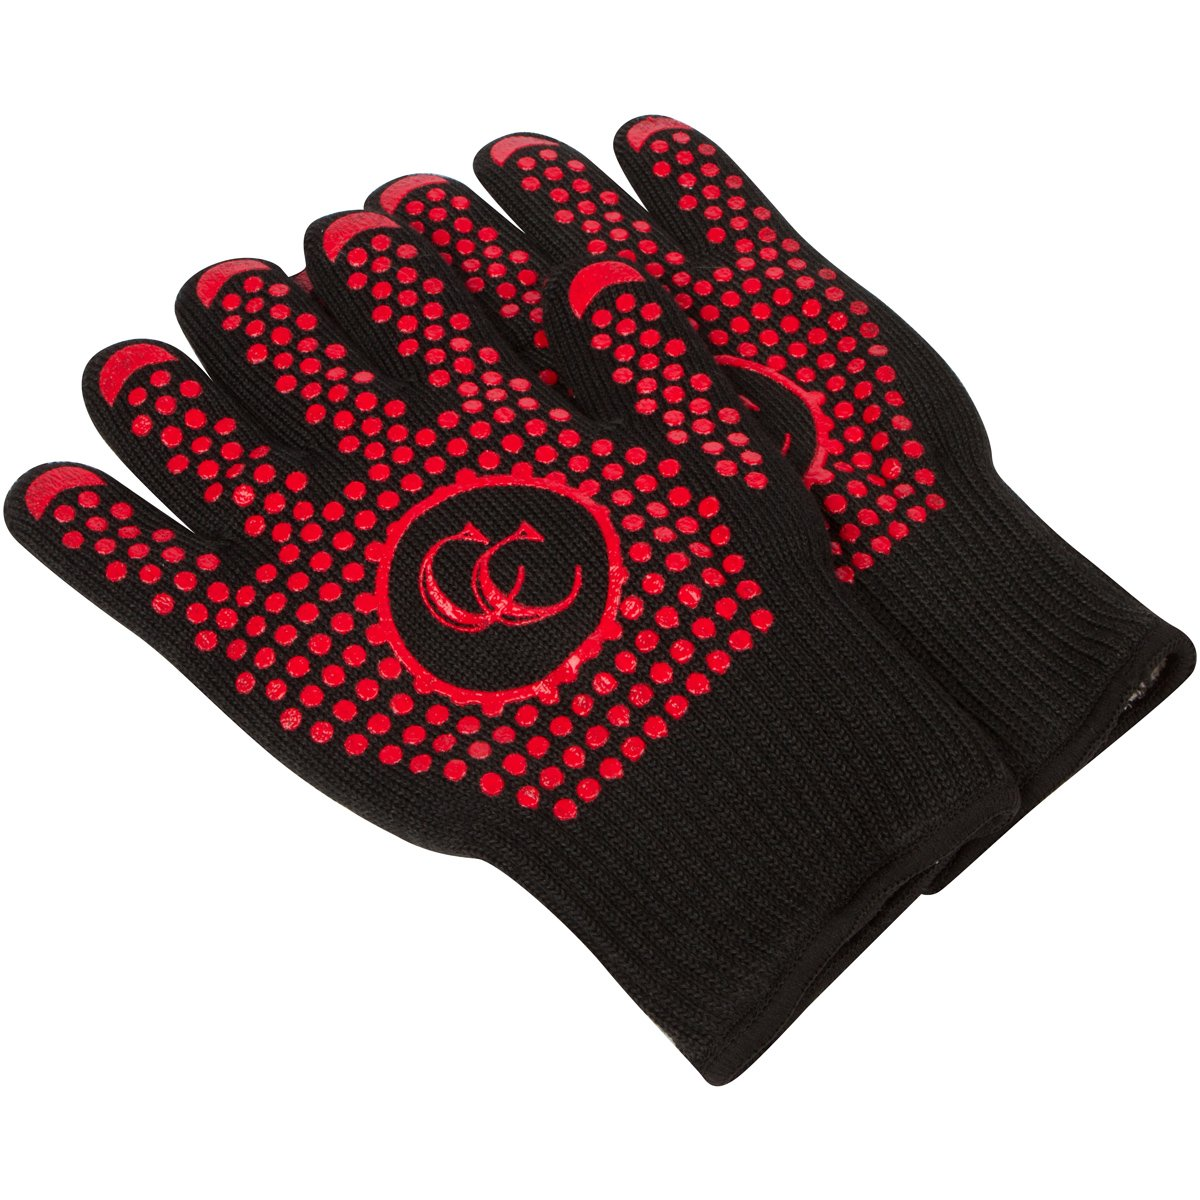 Culinary Couture Hot Gloves for Barbecue Grilling Cooking - Heat Resistant Oven Mitts Set - Provides 662F Protection - Bonus Ebook - XL